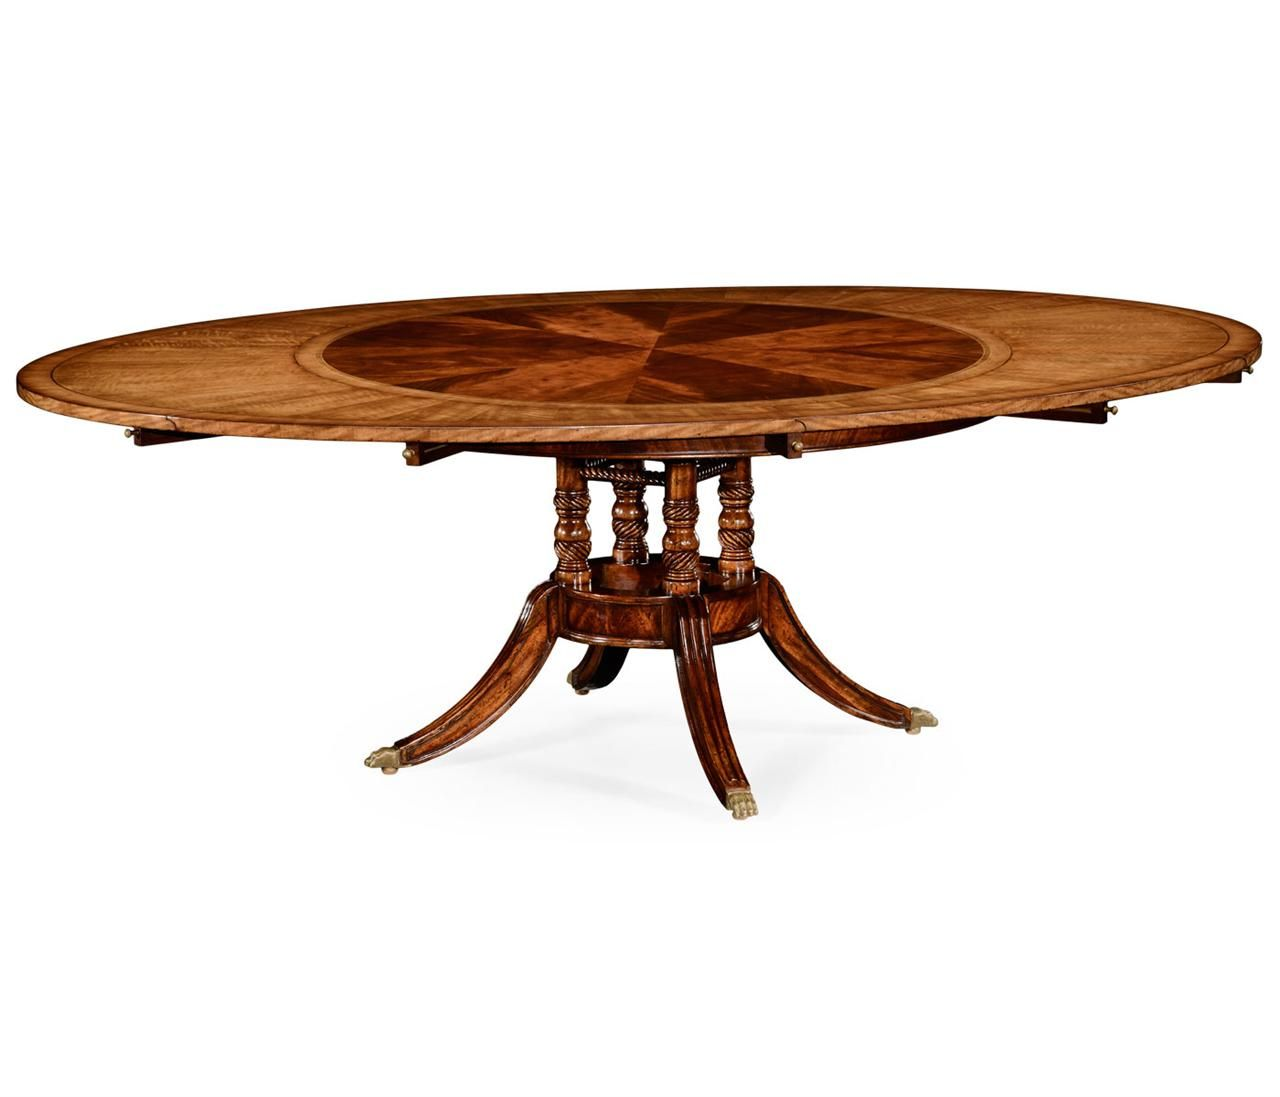 High Quality Round To Oval Table With Perimeter Leaves Finely